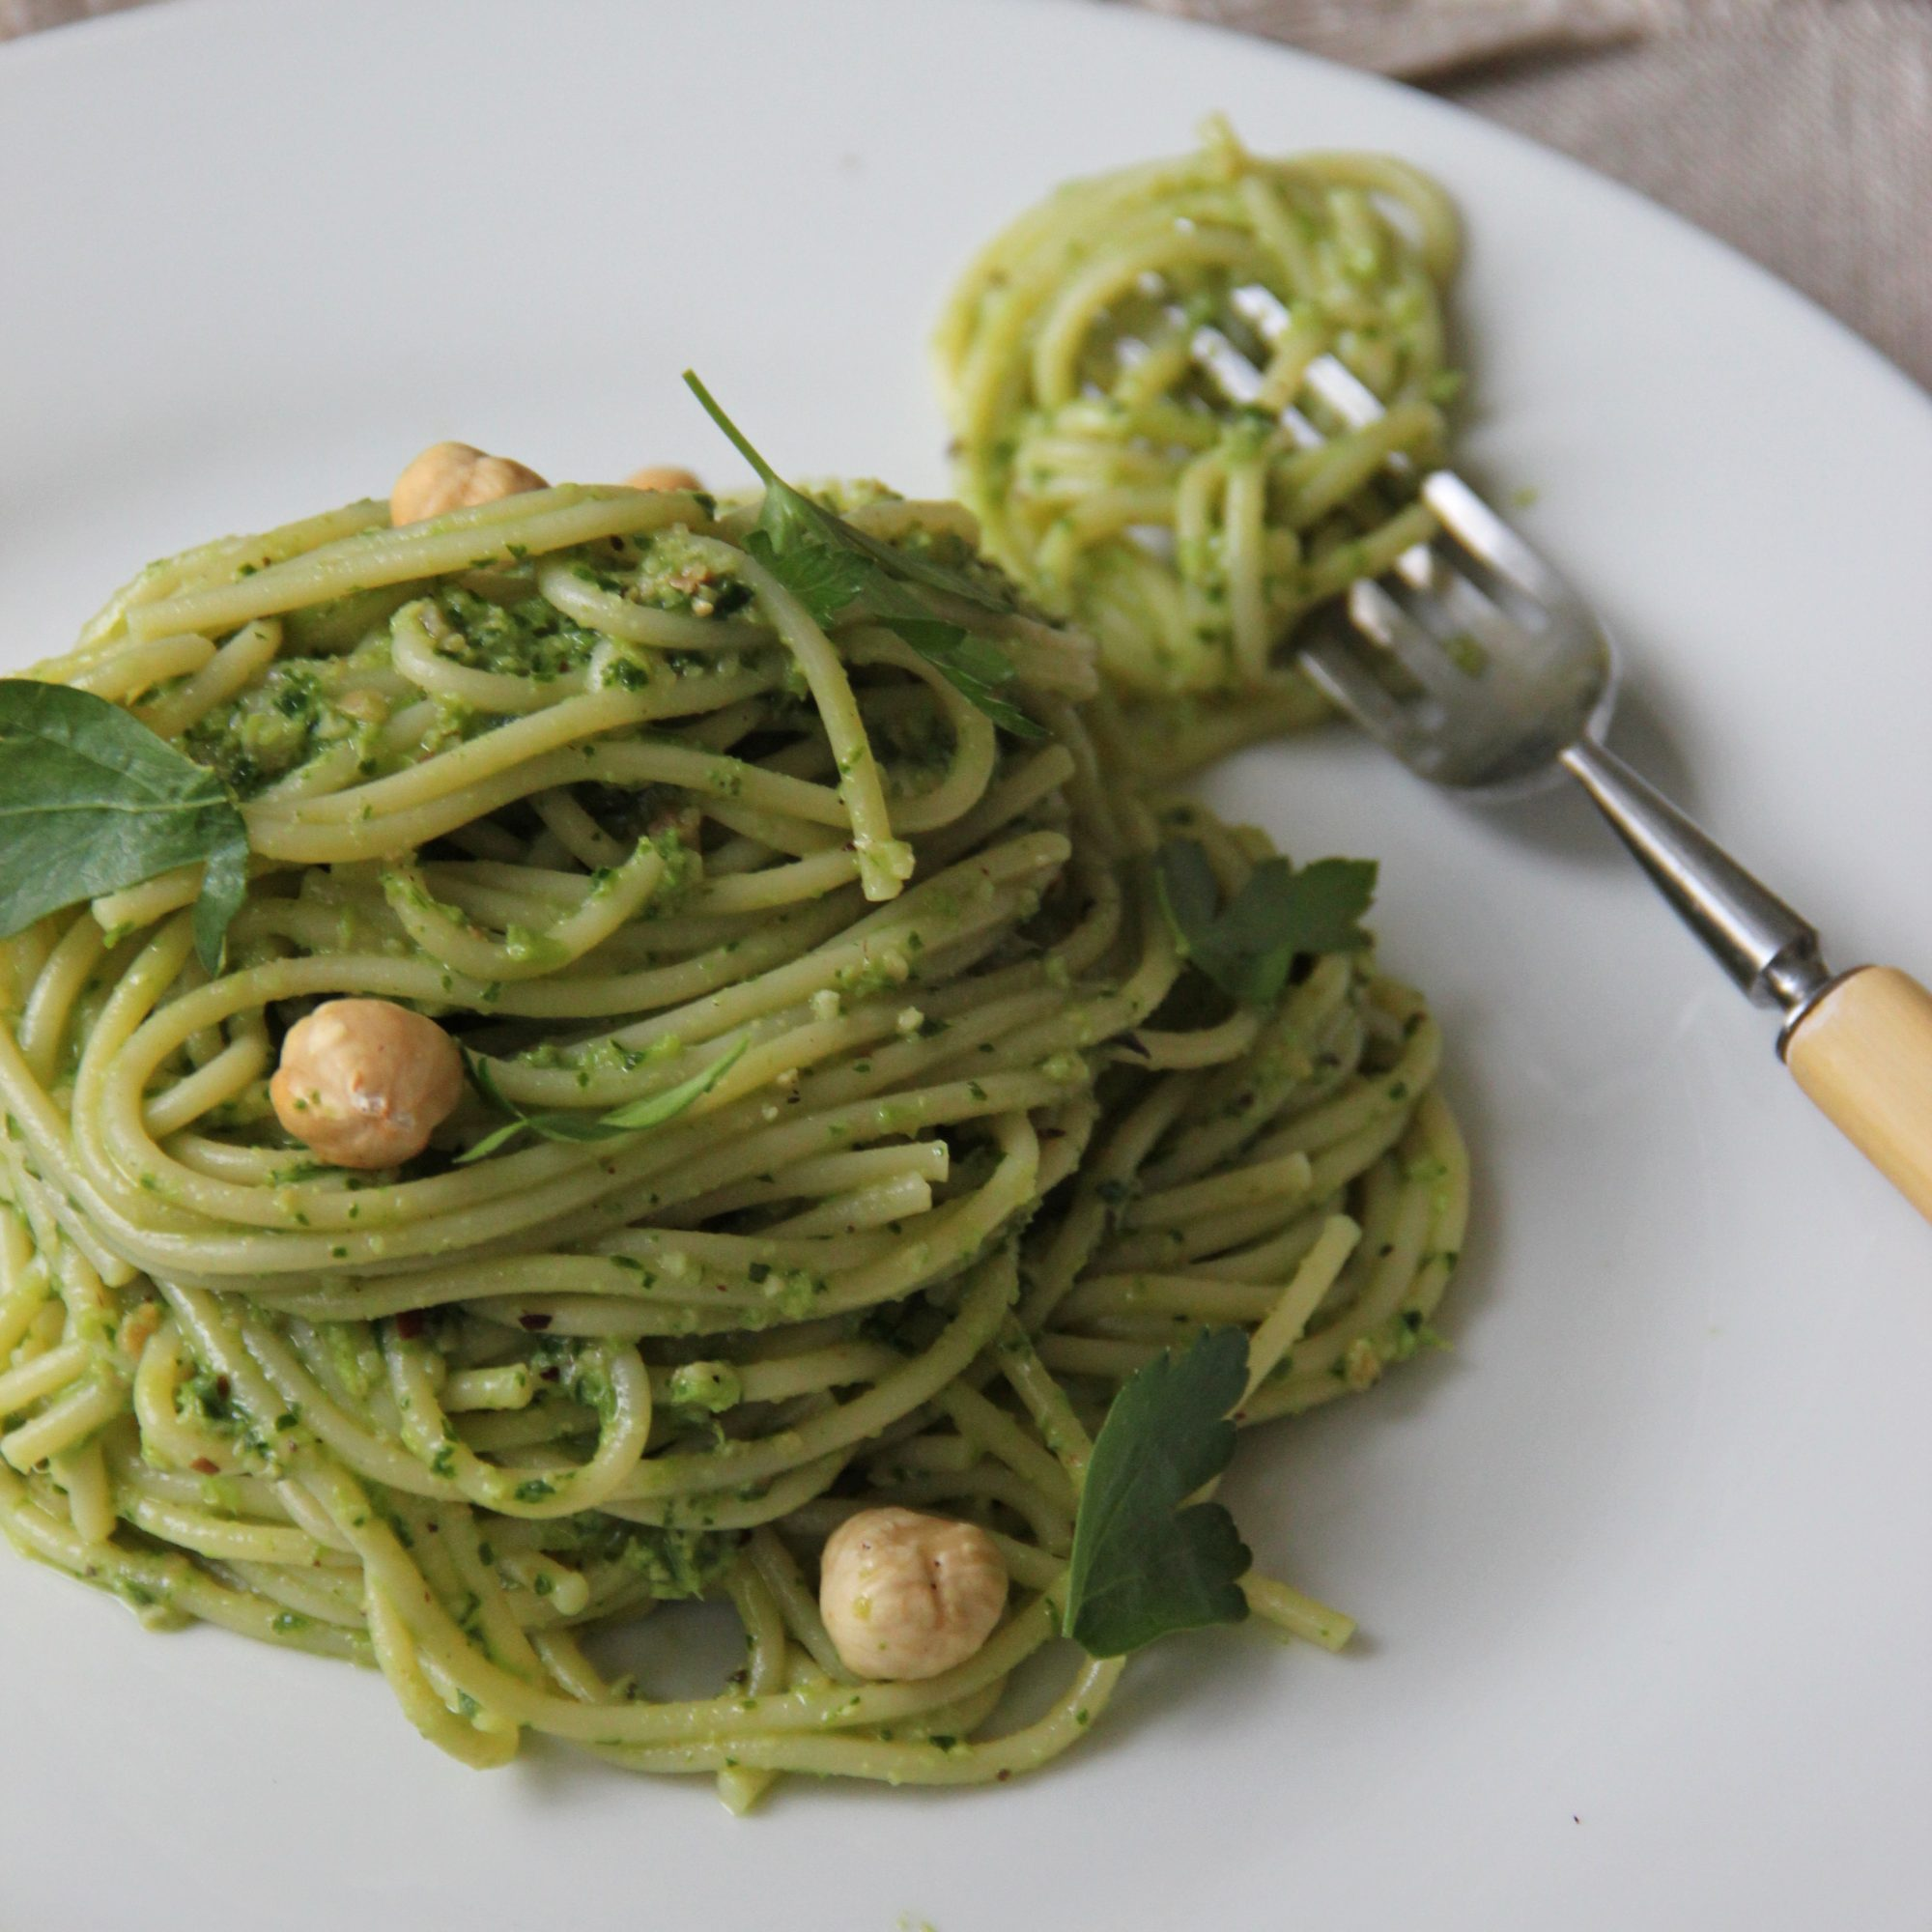 Parsley-Hazelnut Pesto with Spaghetti